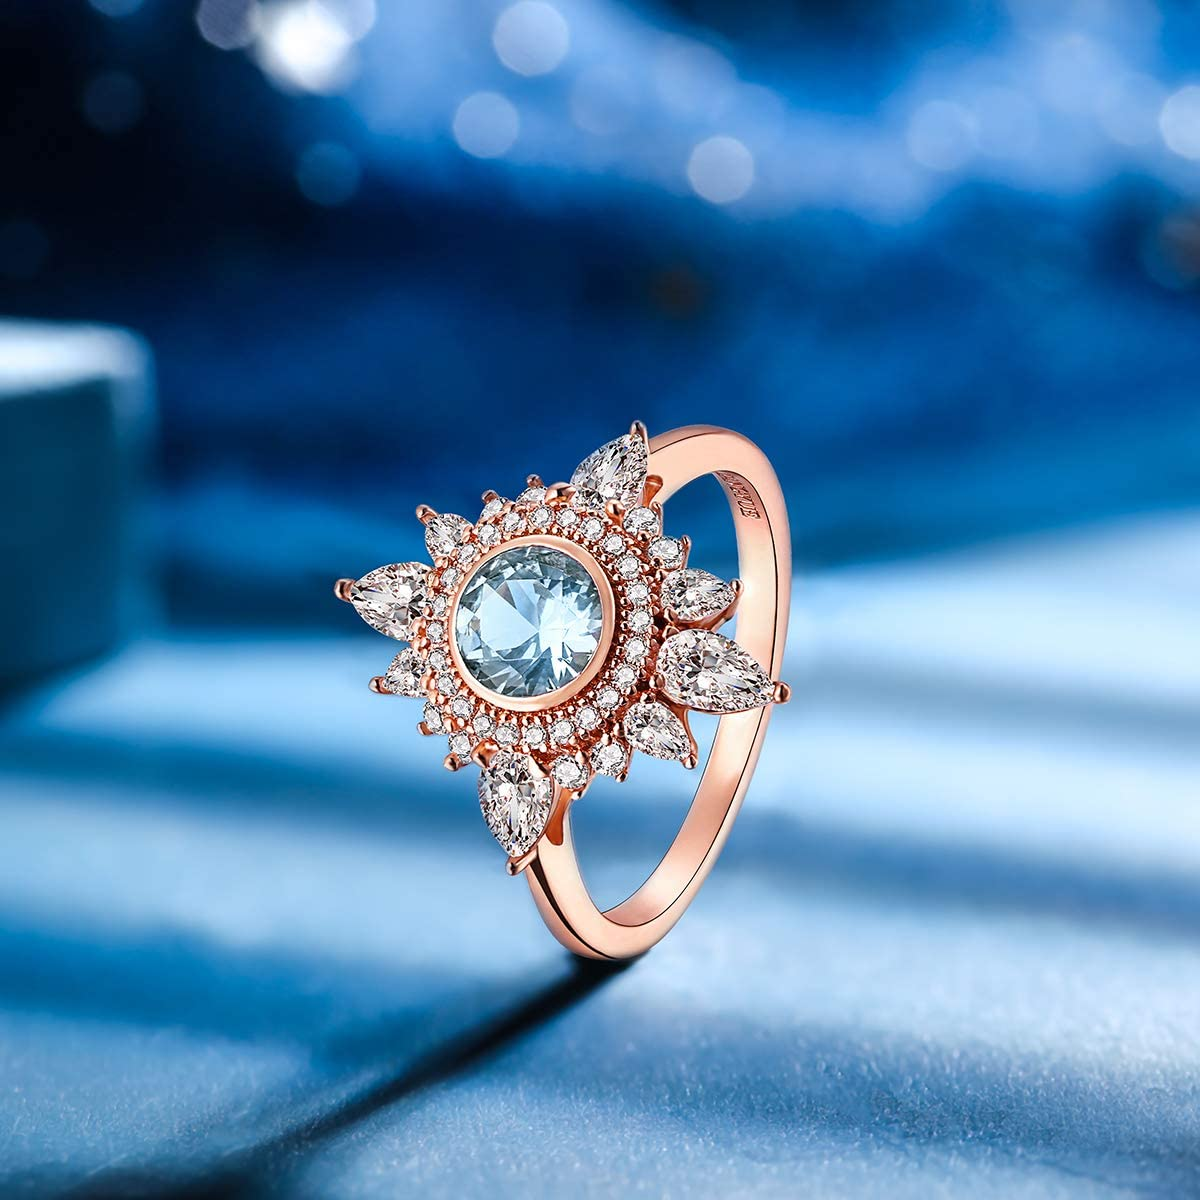 Rose Blue Spinel Flower Ring Dainty Girlfriend Silver Delicate Petite Bridal Wedding Engagement Size 4 5 6 7 8 Promise Birthday Gift R282